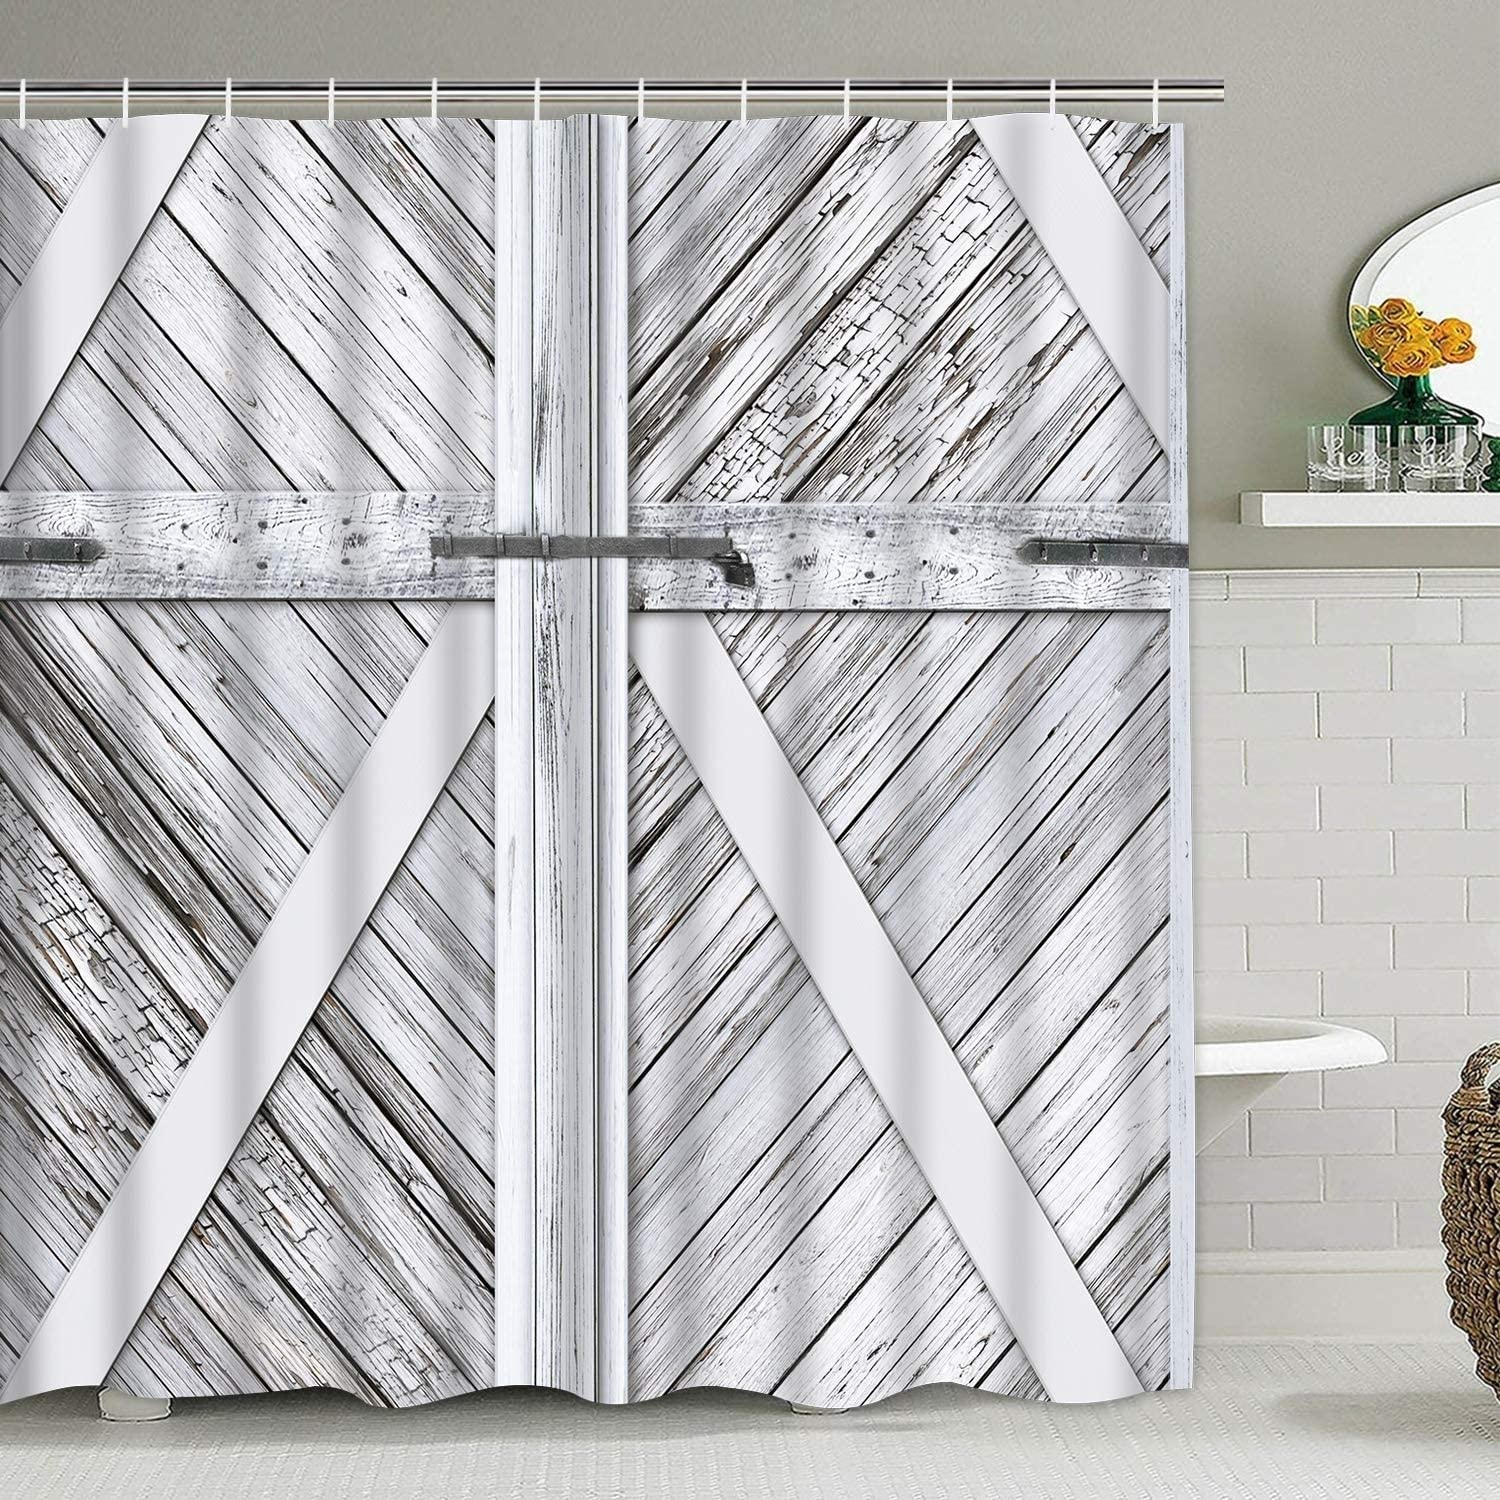 MISC Polyester Shower Curtain with Hooks Oklahoma City Mall Door Grey X Barn Some reservation 72